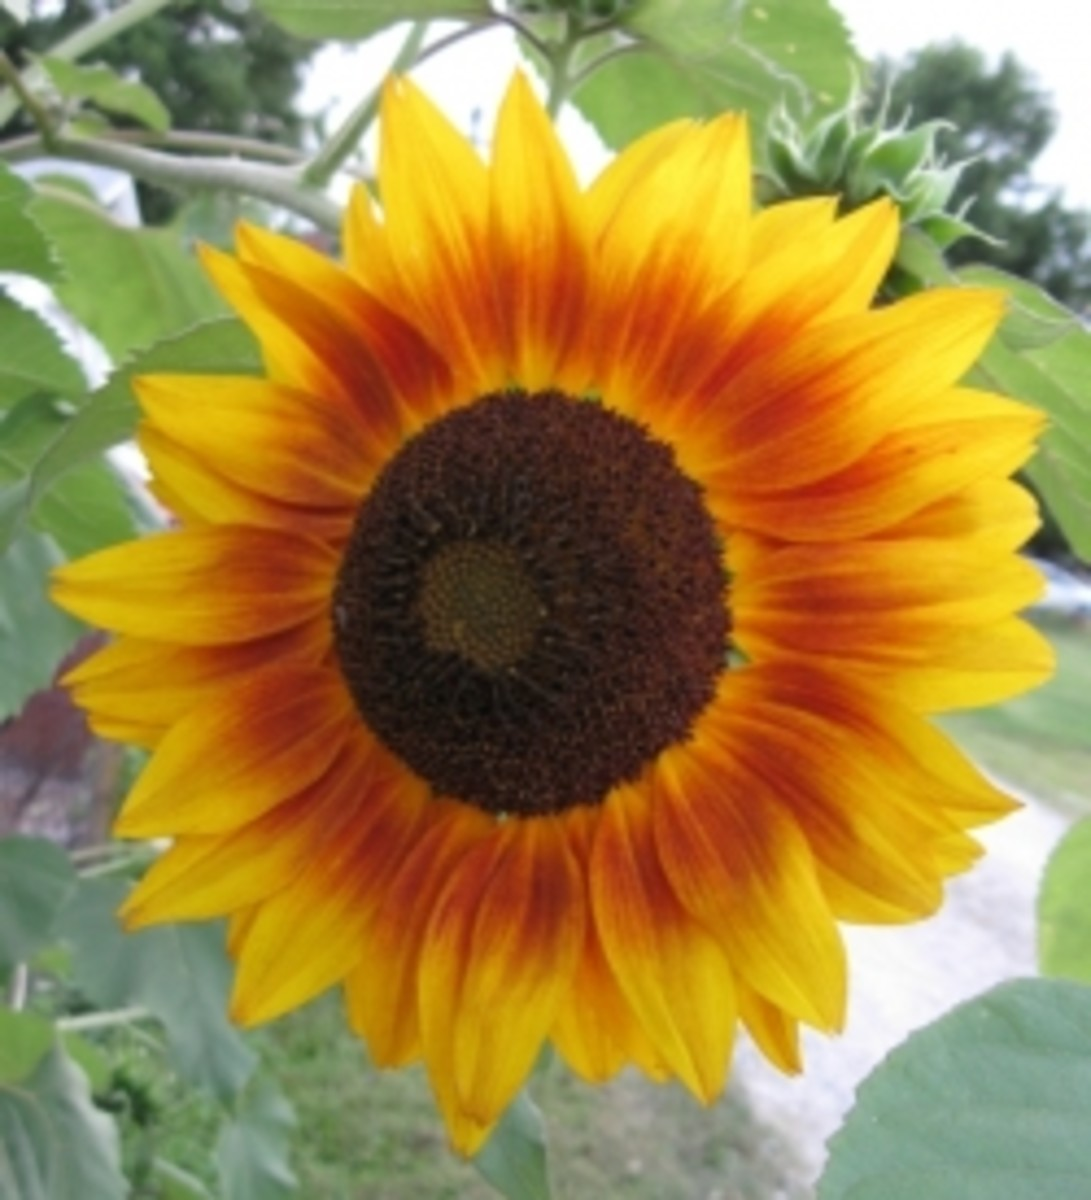 Sunflower Pictures and More